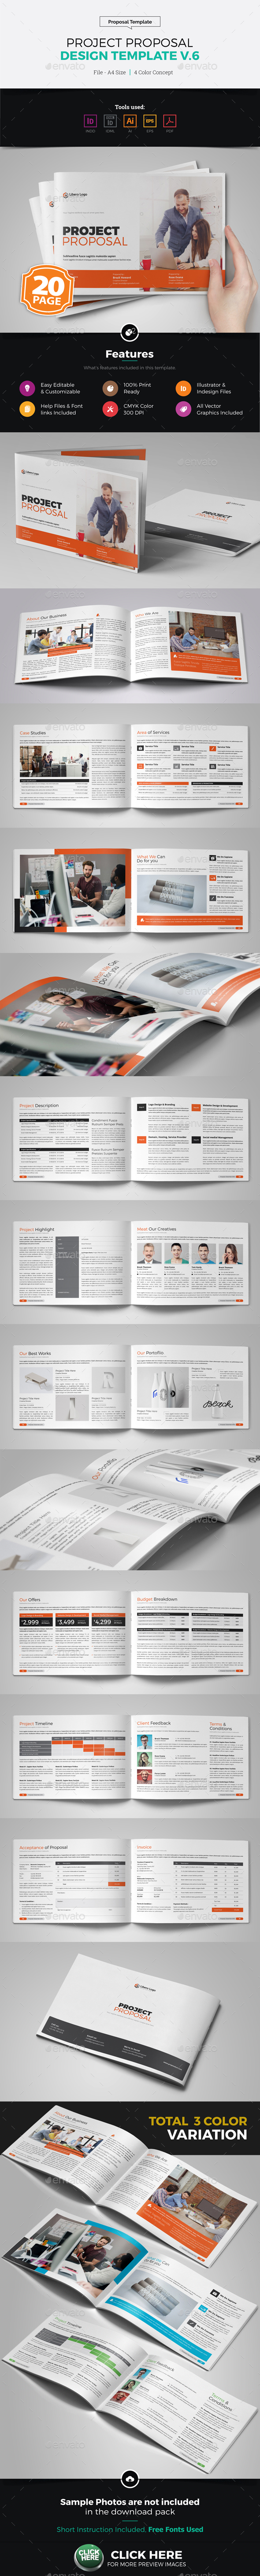 Project Proposal Design v6 - Proposals & Invoices Stationery